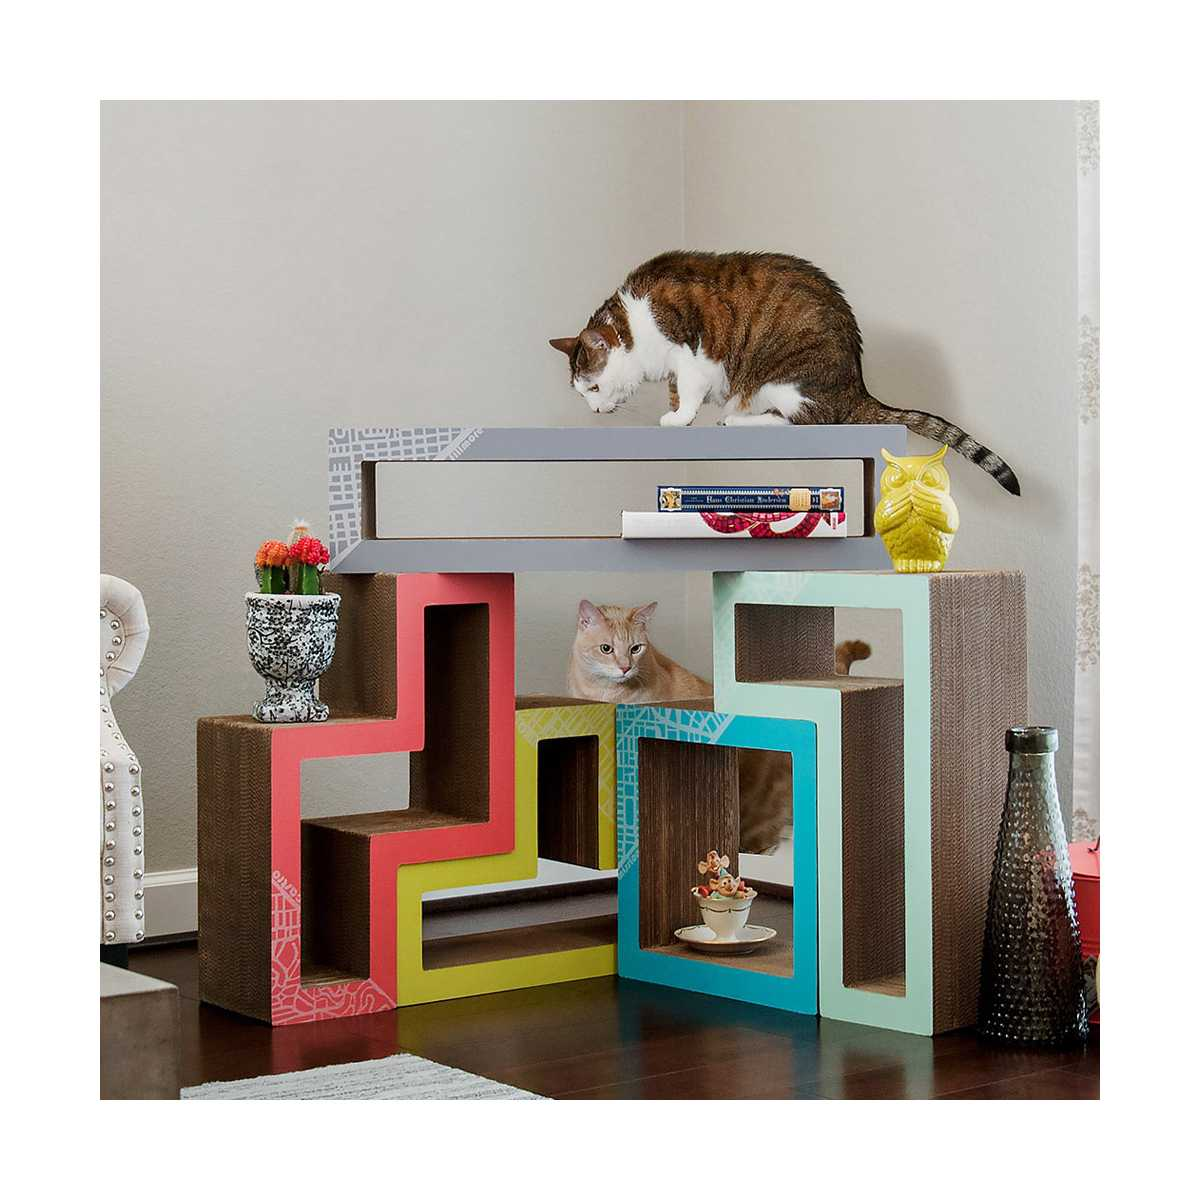 Colorful Modular Cat Tree Furniture for Living Room